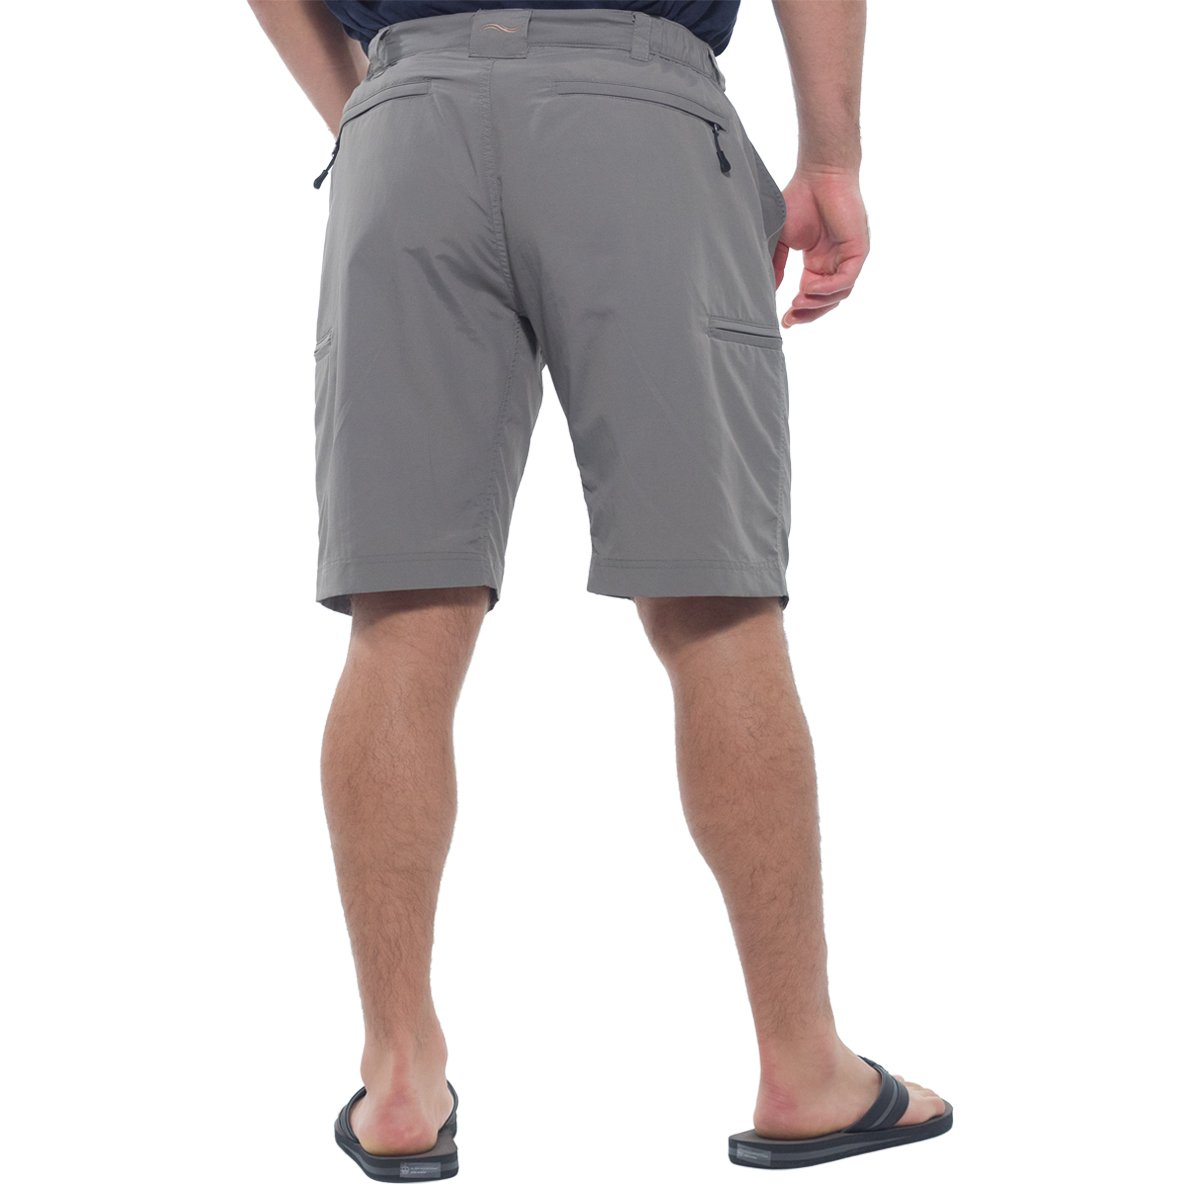 79bd0ed688 Mens Moisture Wicking Quick Dry Fabric Breathable Lightweight Cargo Shorts  - Small: Amazon.ca: Sports & Outdoors